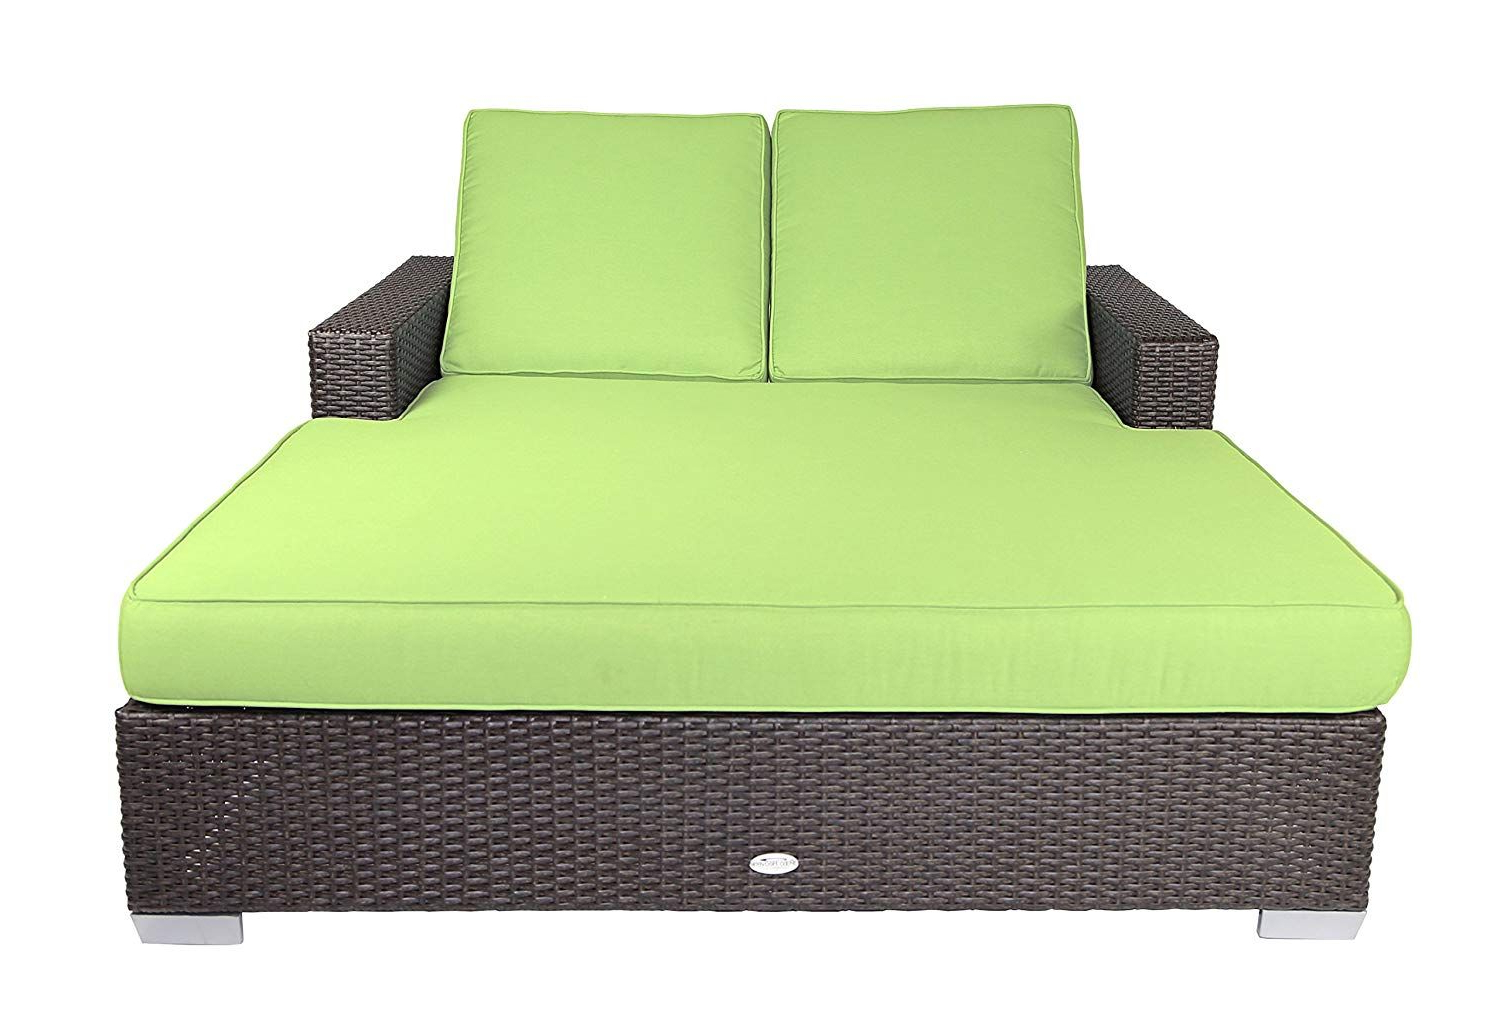 Newest Tripp Sofa With Cushions Within Amazon : Patio Heaven Sb C2 5421 Signature Double Chaise (View 13 of 20)